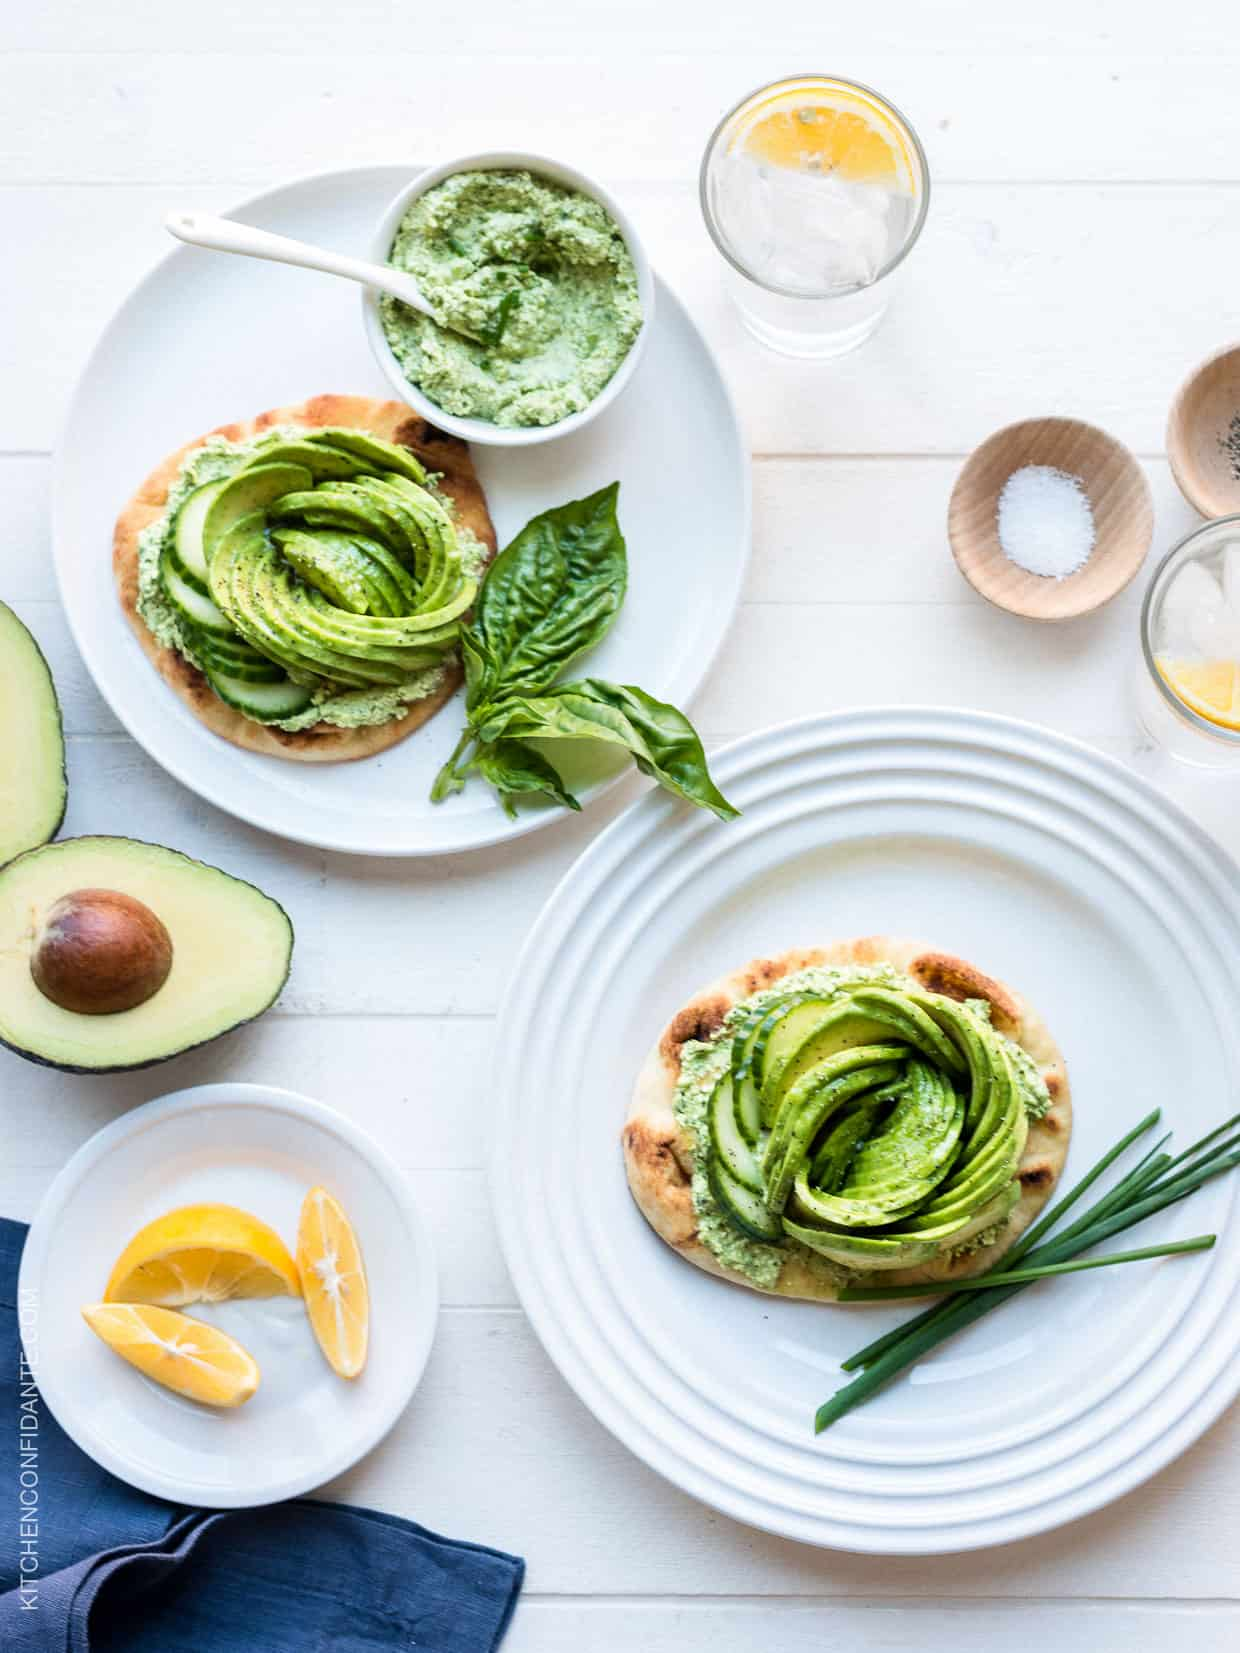 Toasted naan topped with Green Goddess feta spread and an avocado rose served on white plates.